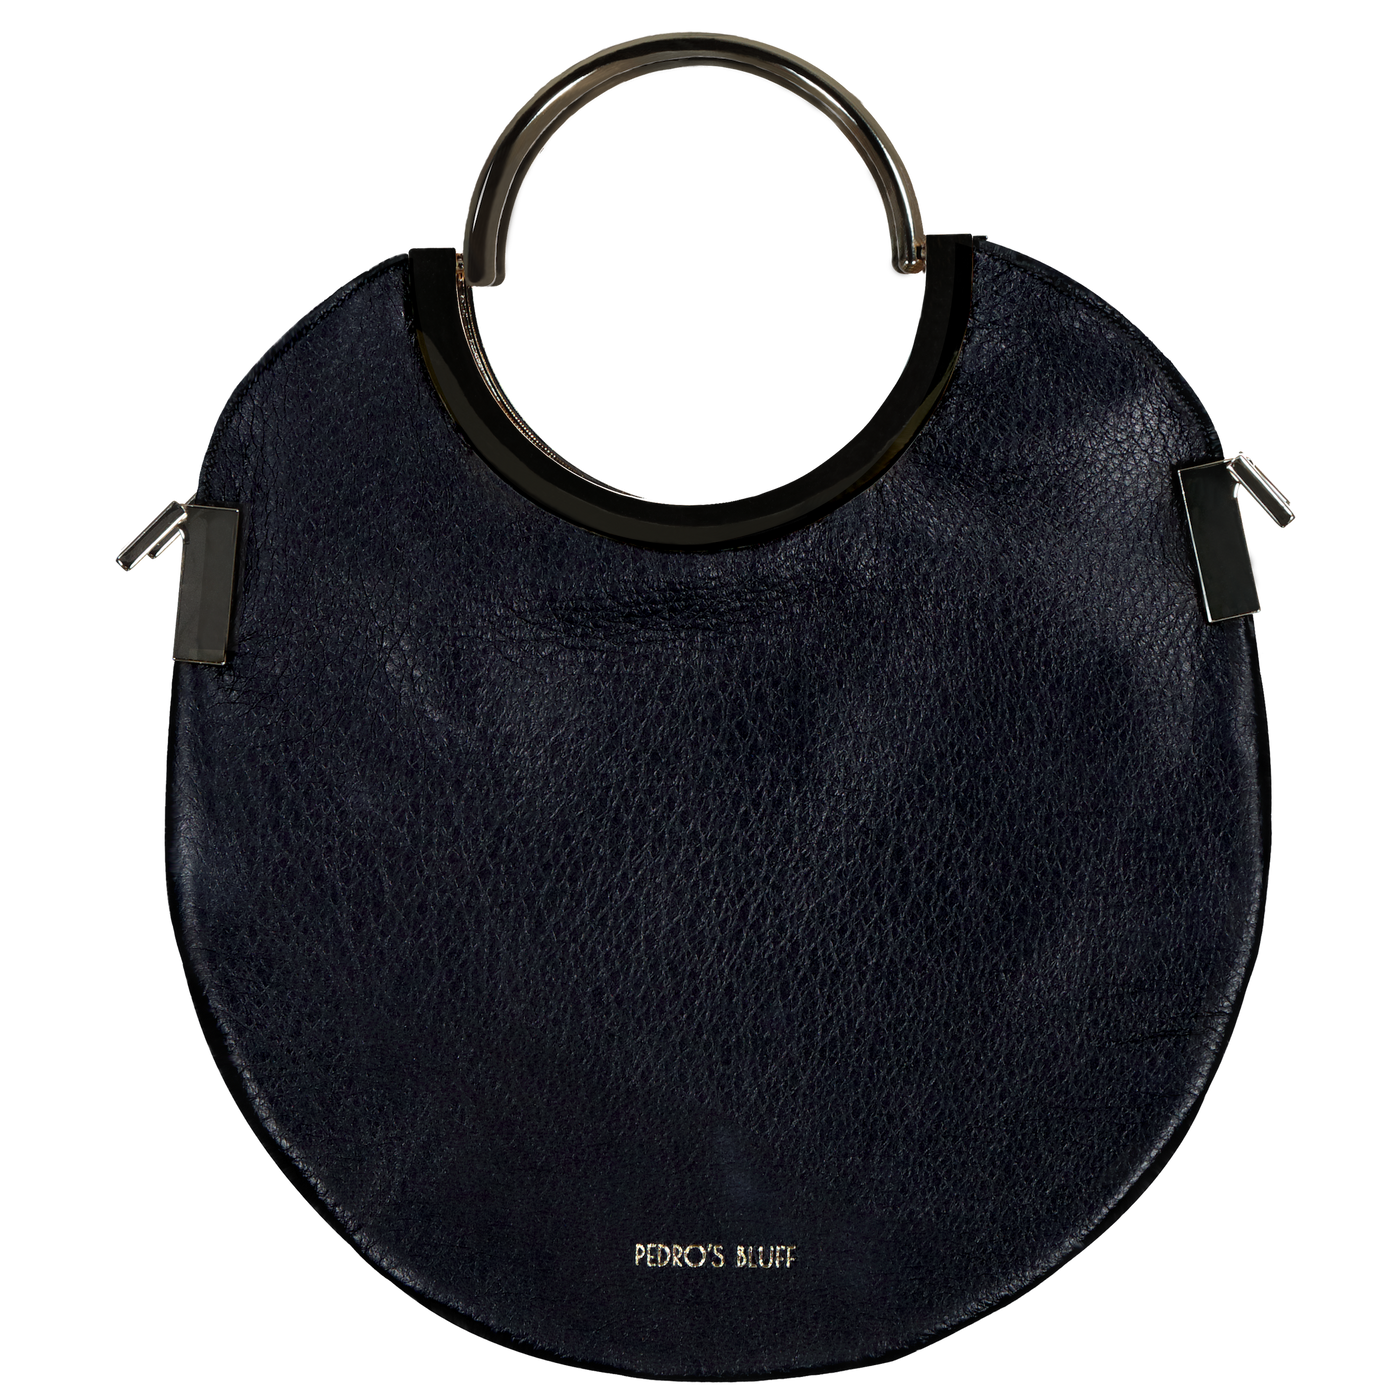 Vongole Circle Tote - Black - PEDRO'S BLUFF - New Zealand Leather Bags & Accessories